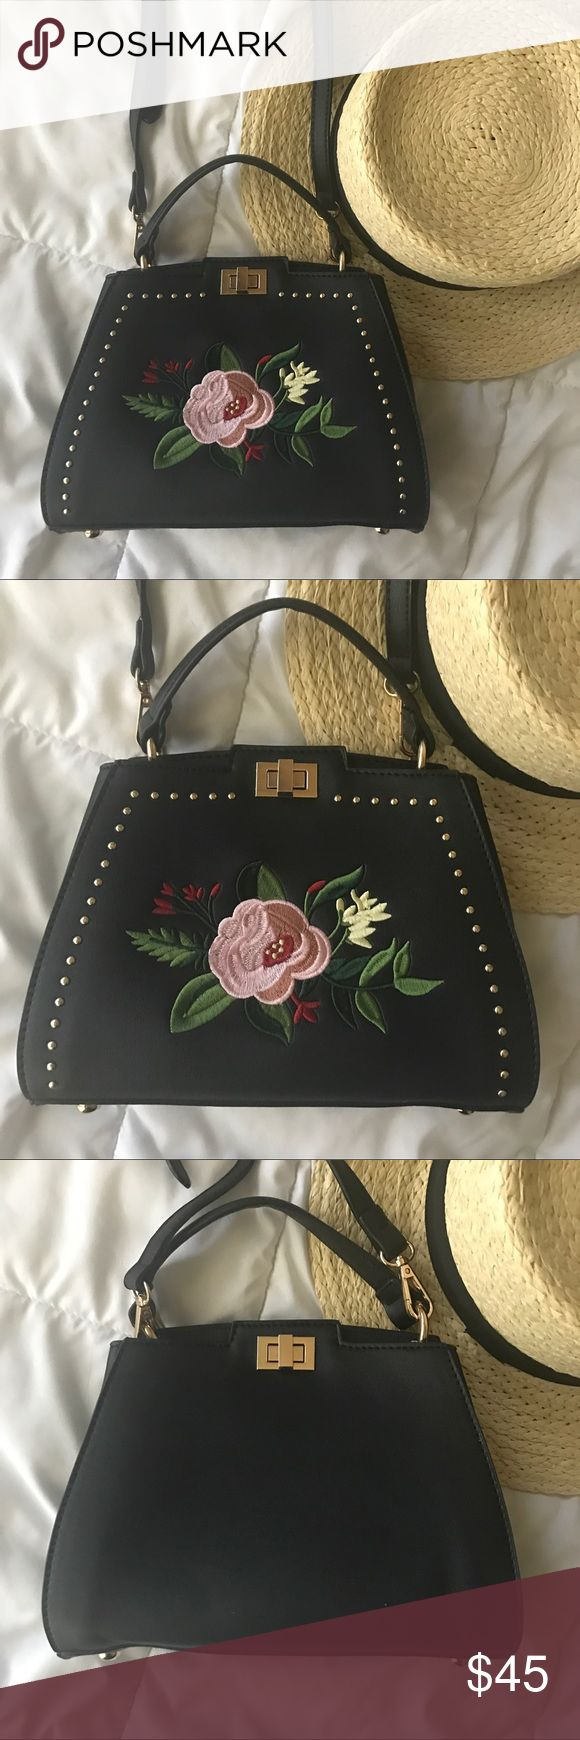 "NWT EMBROIDERED BAG New with tags super cute embroidered crossbody bag with gold studs. 6"" x 8"" x 3"".     Boutique brand Bags Crossbody Bags"